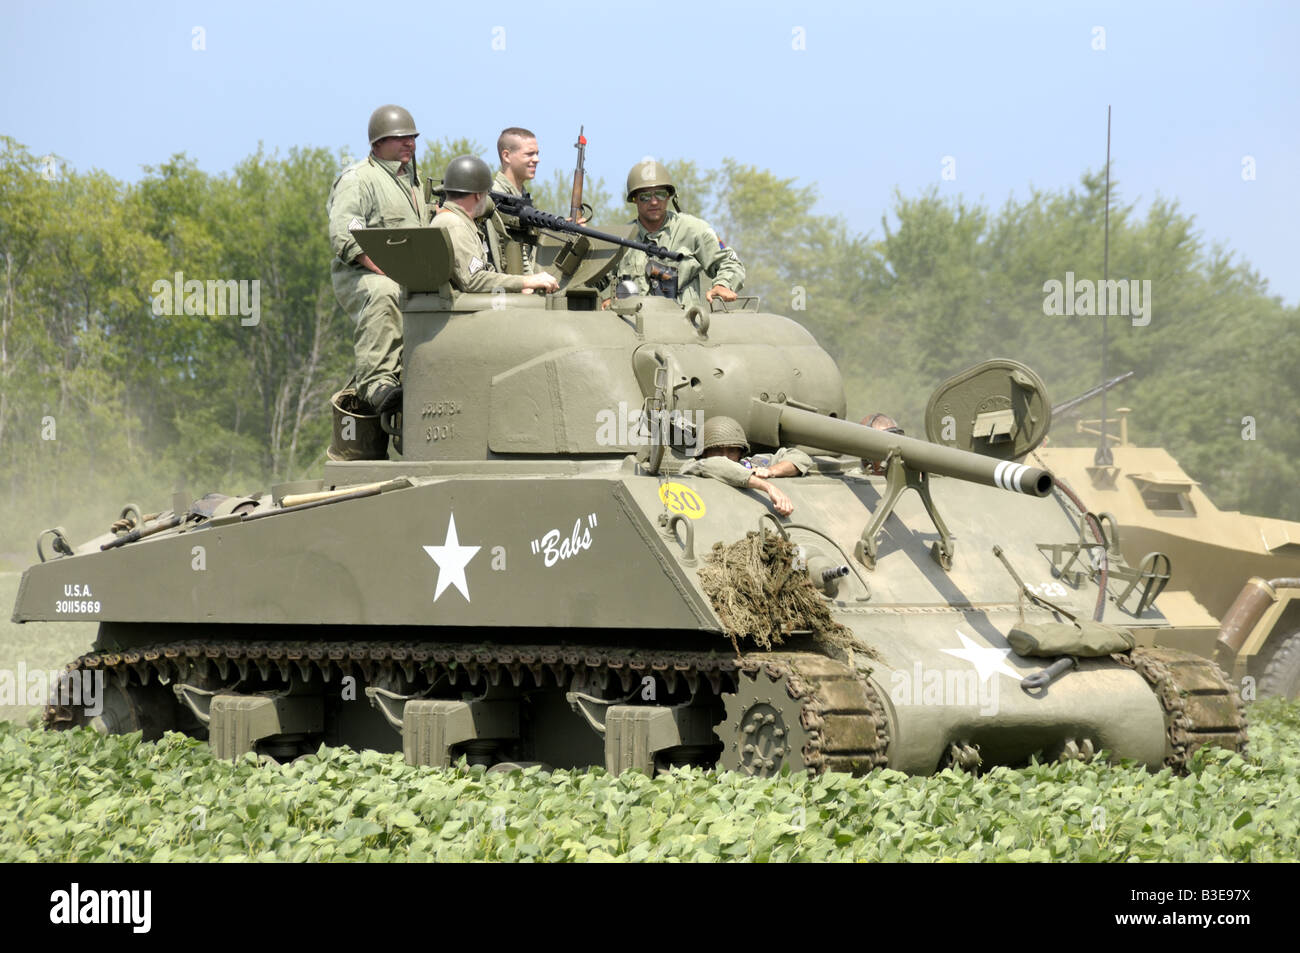 American soldiers aboard an American tank during a WWII reenactment in Bellville, Michigan - Stock Image